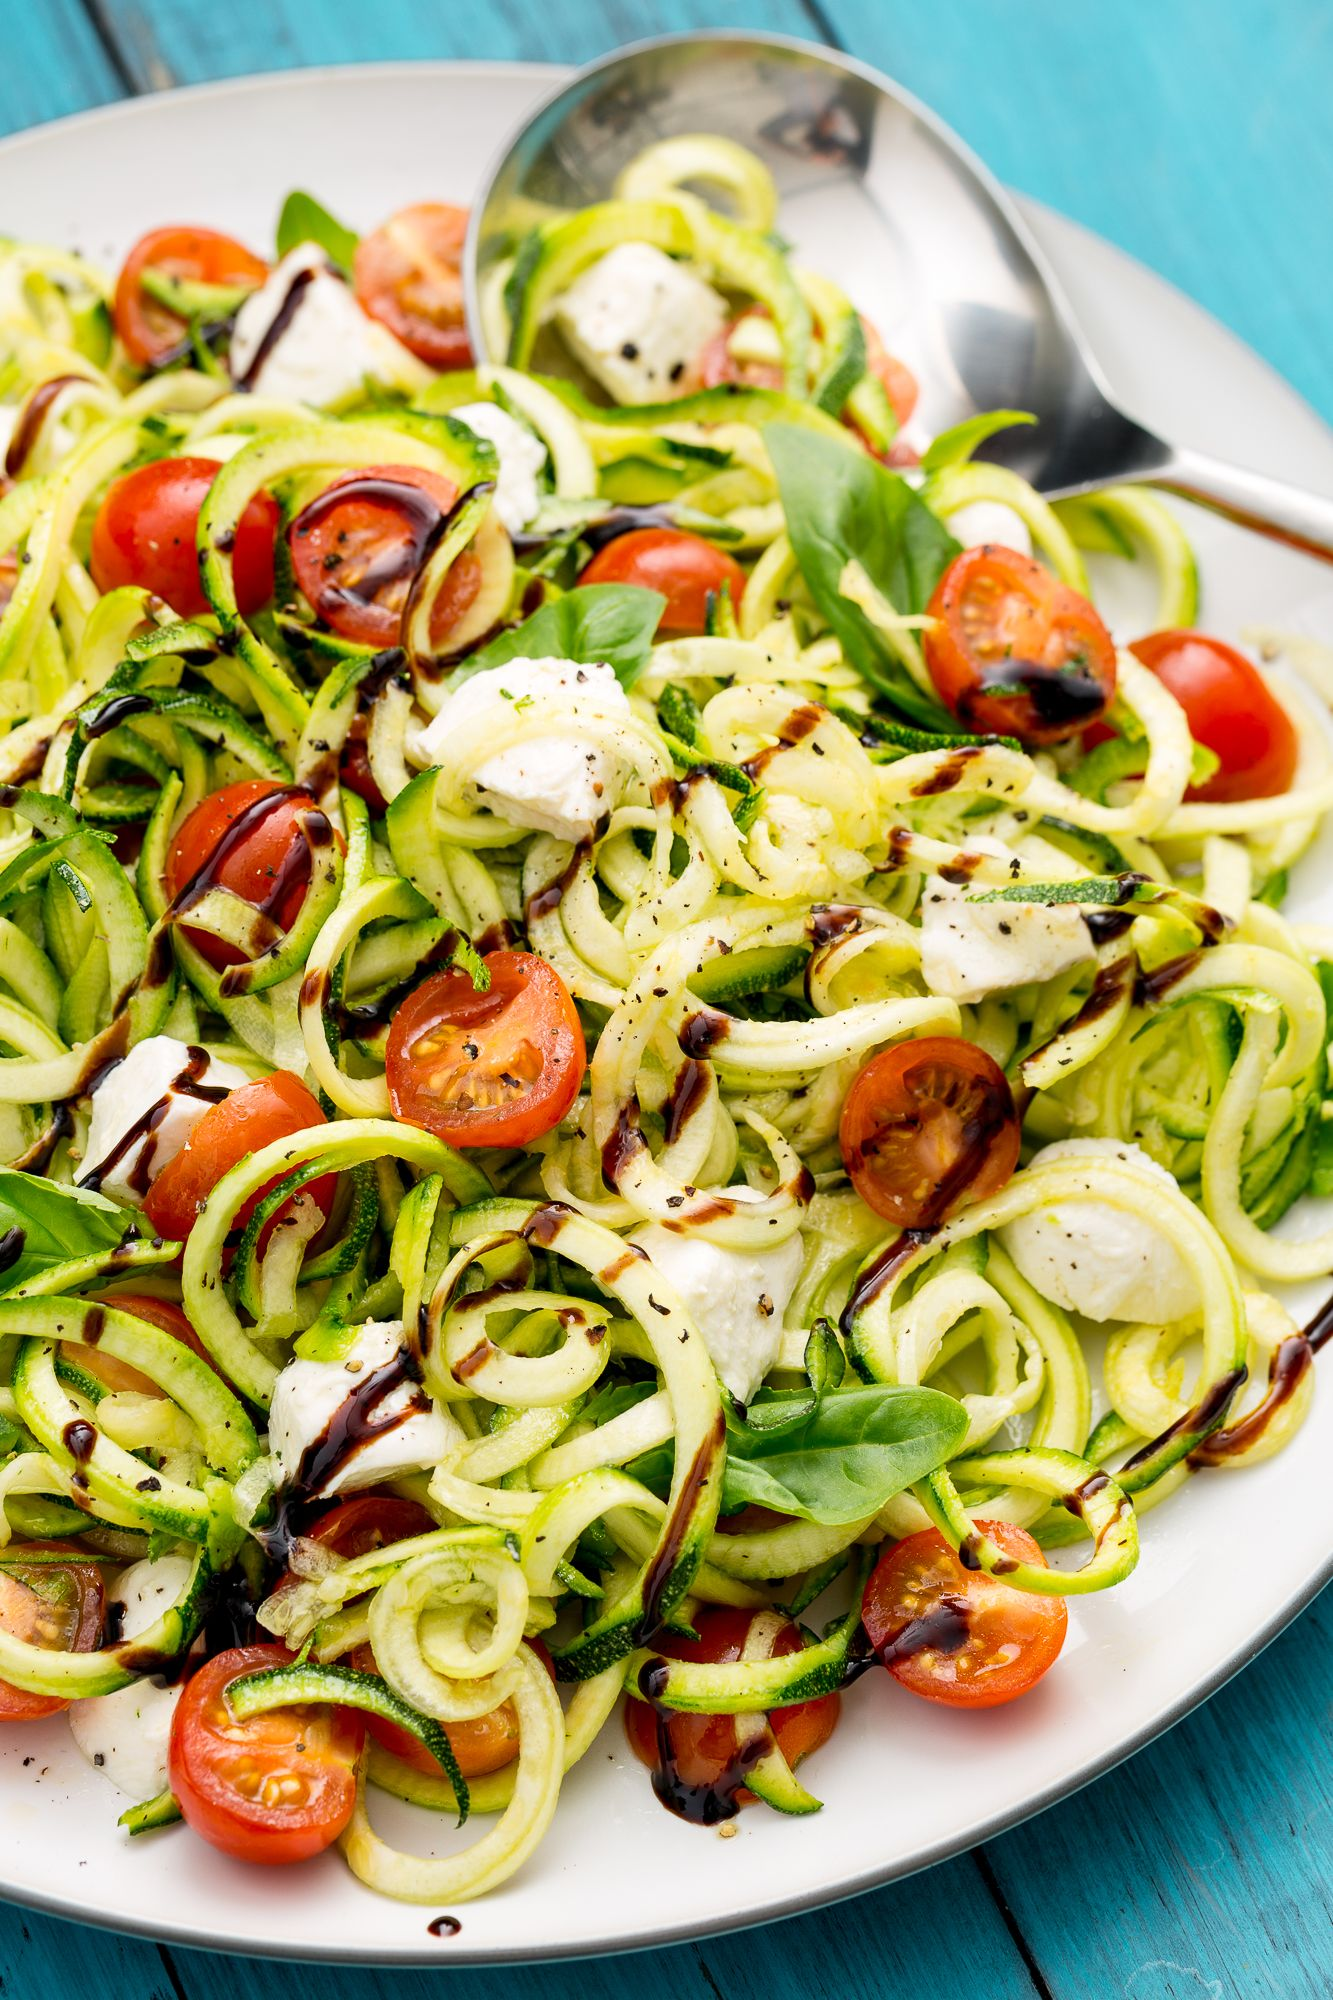 Simple and tasty summer salads on the holiday table 89